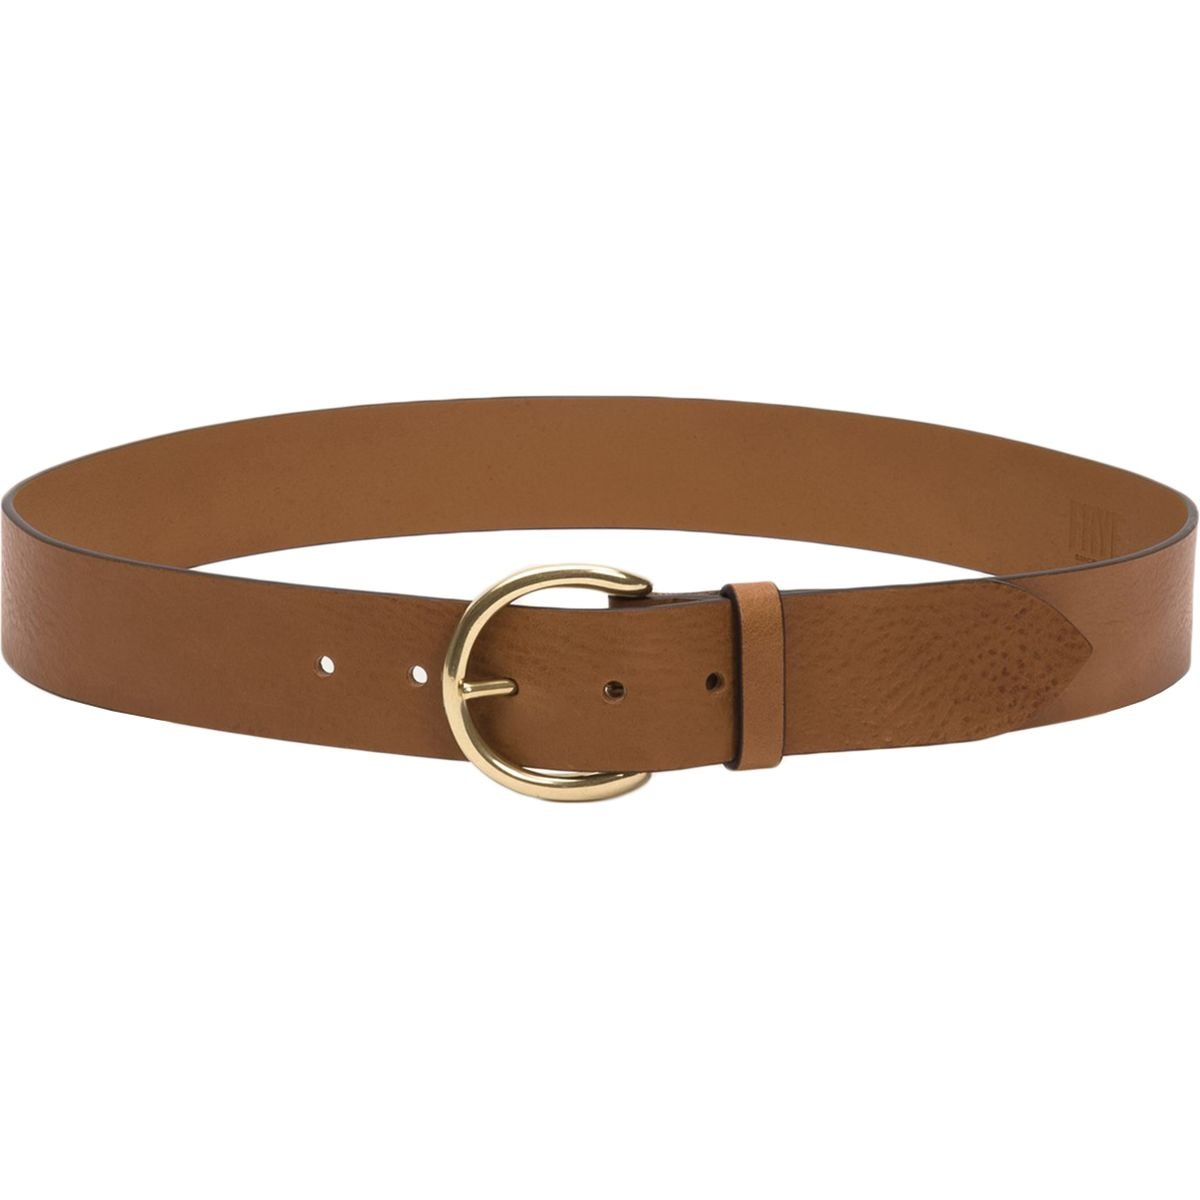 Frye Women's Campus Belt Cognac Leather MD by FRYE